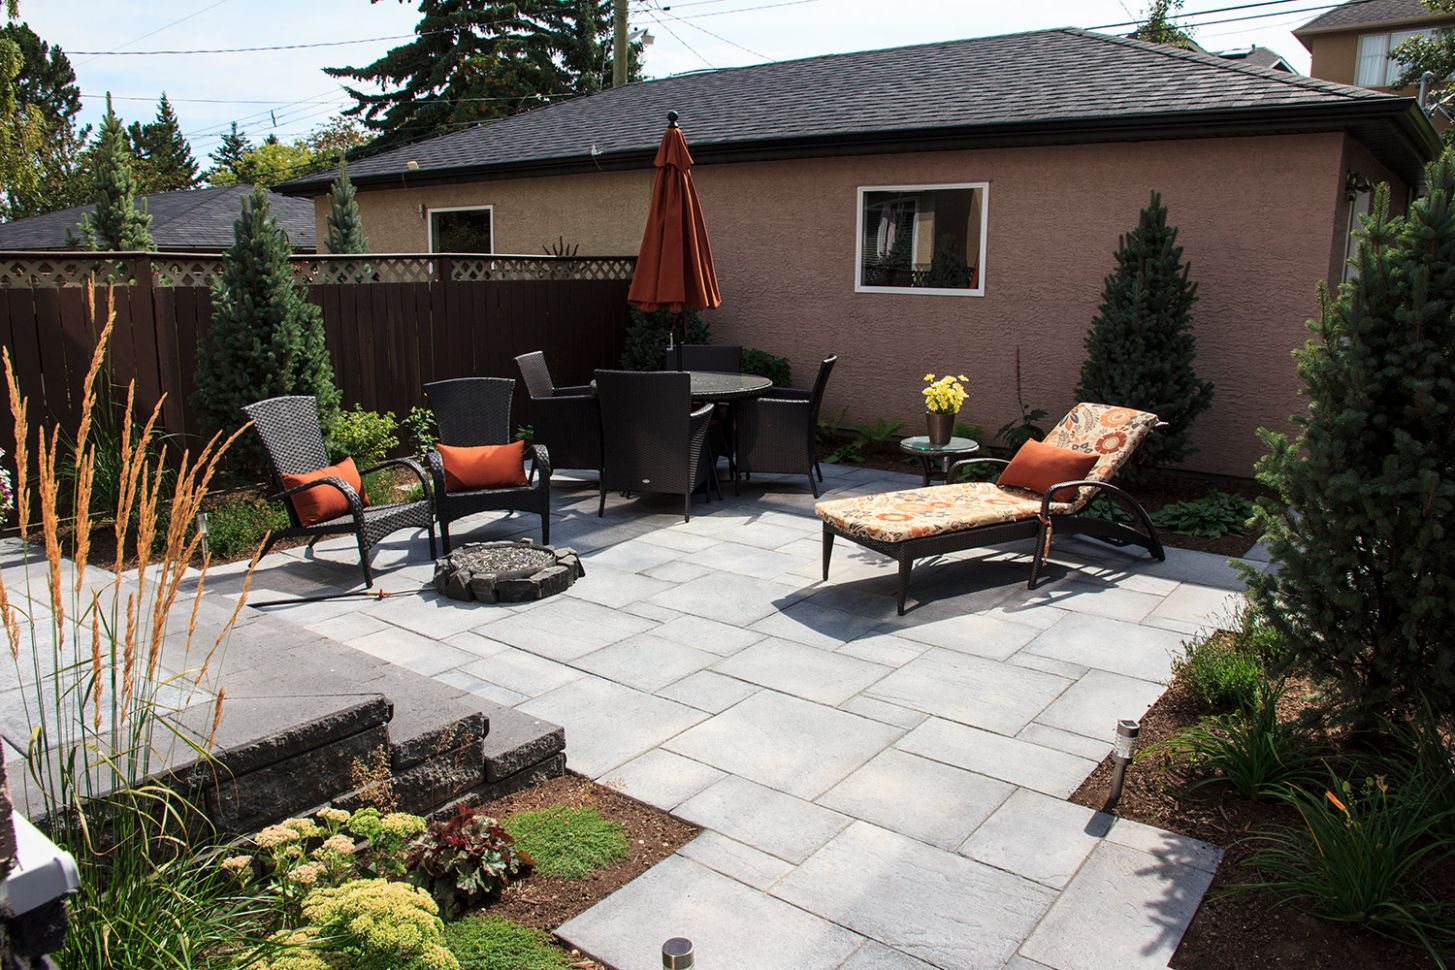 The Landscape Artist - Landscaping Calgary - Award winning ..